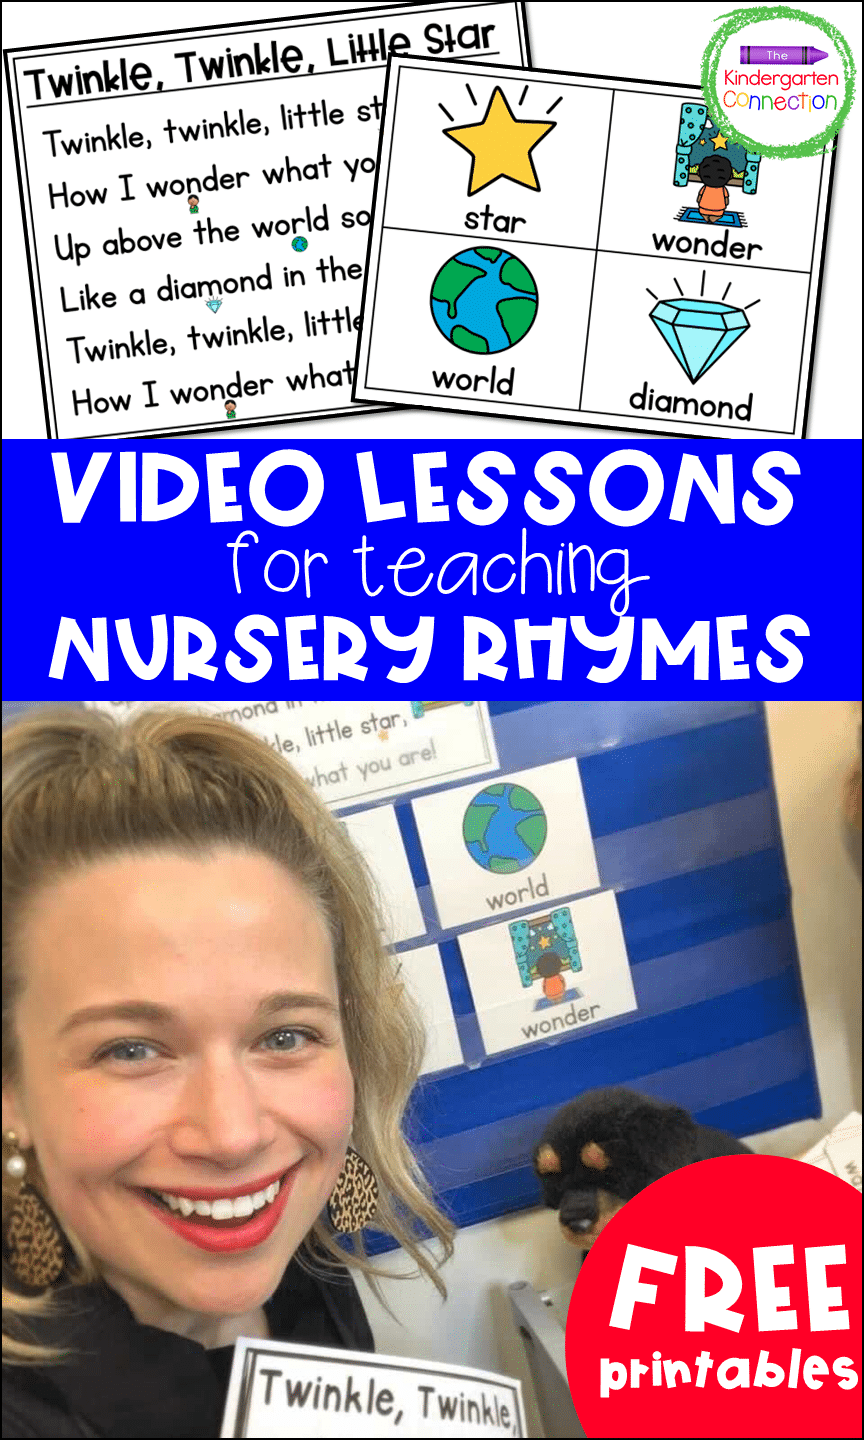 These video lessons for teaching with nursery rhymes add tons of fun to your lessons while also offering great practice with rhyming words!